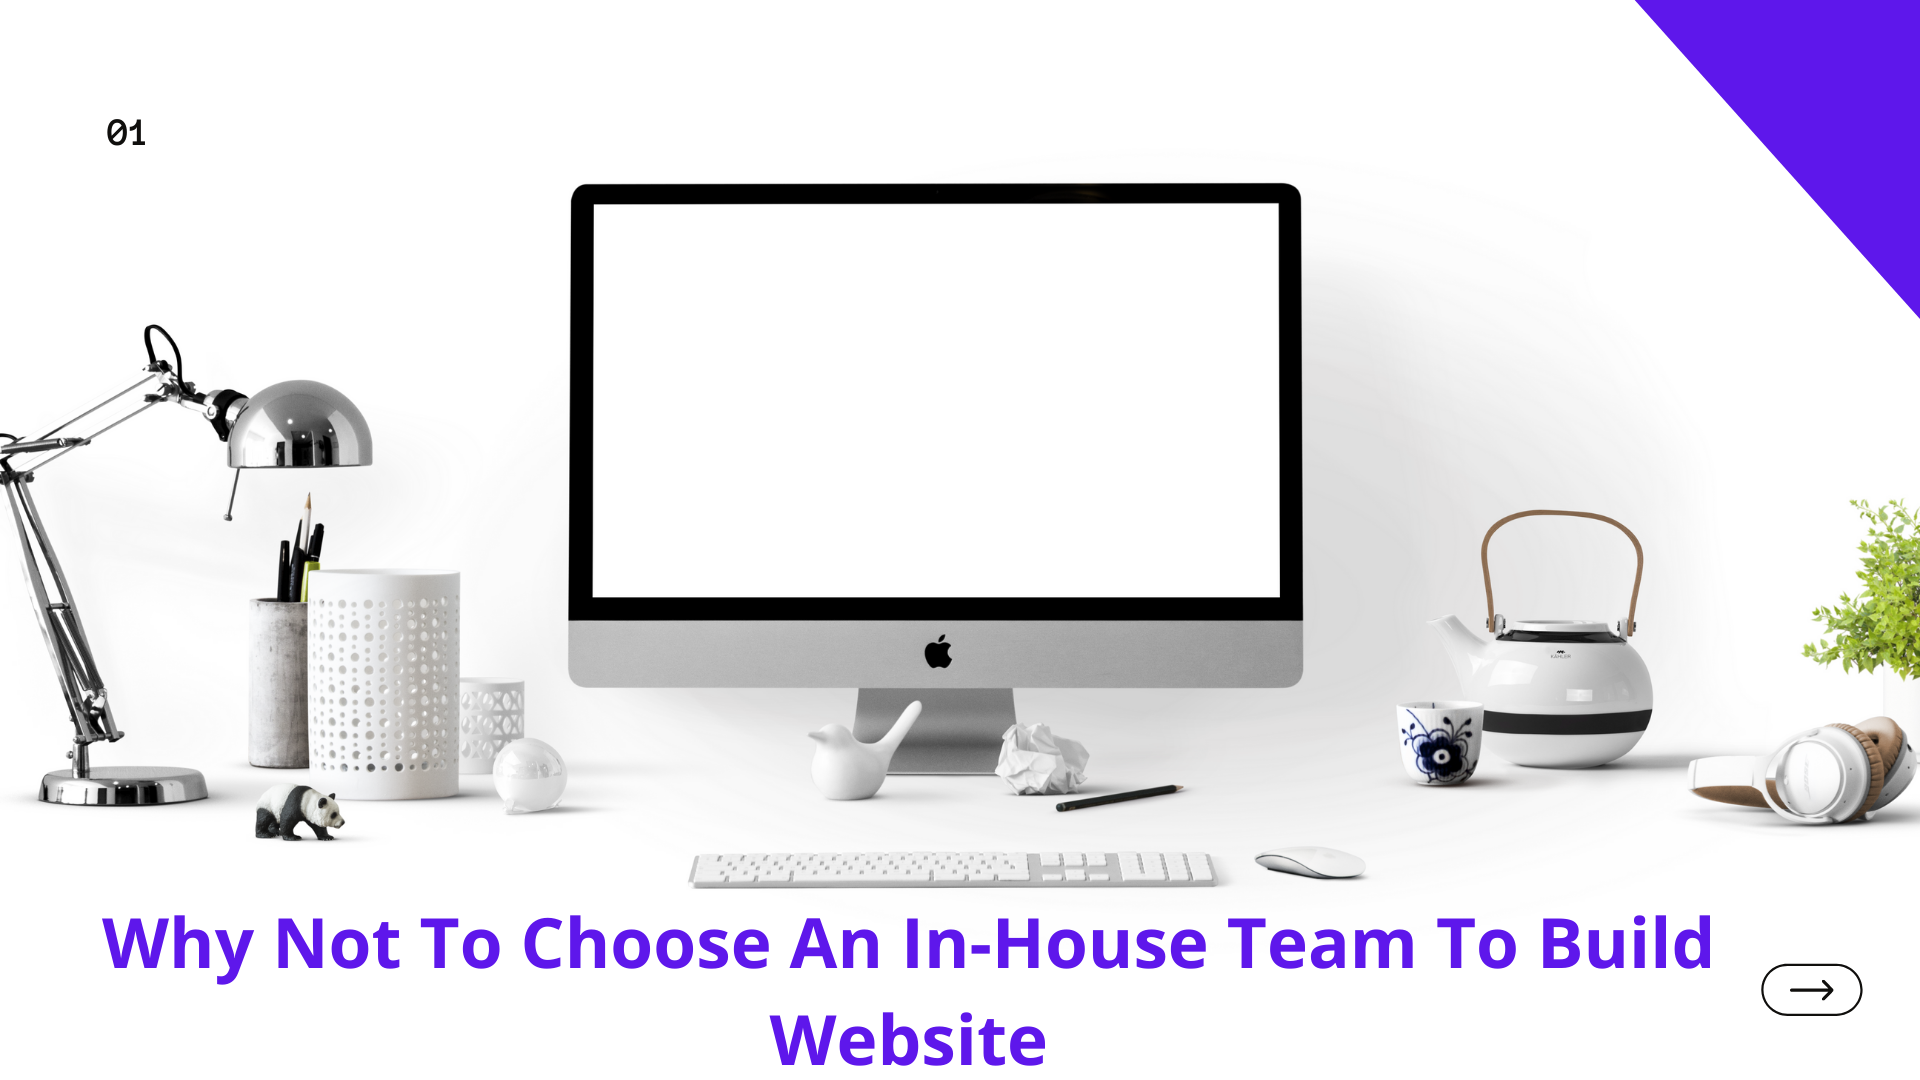 Why Not To Choose An In-House Team To Build Website